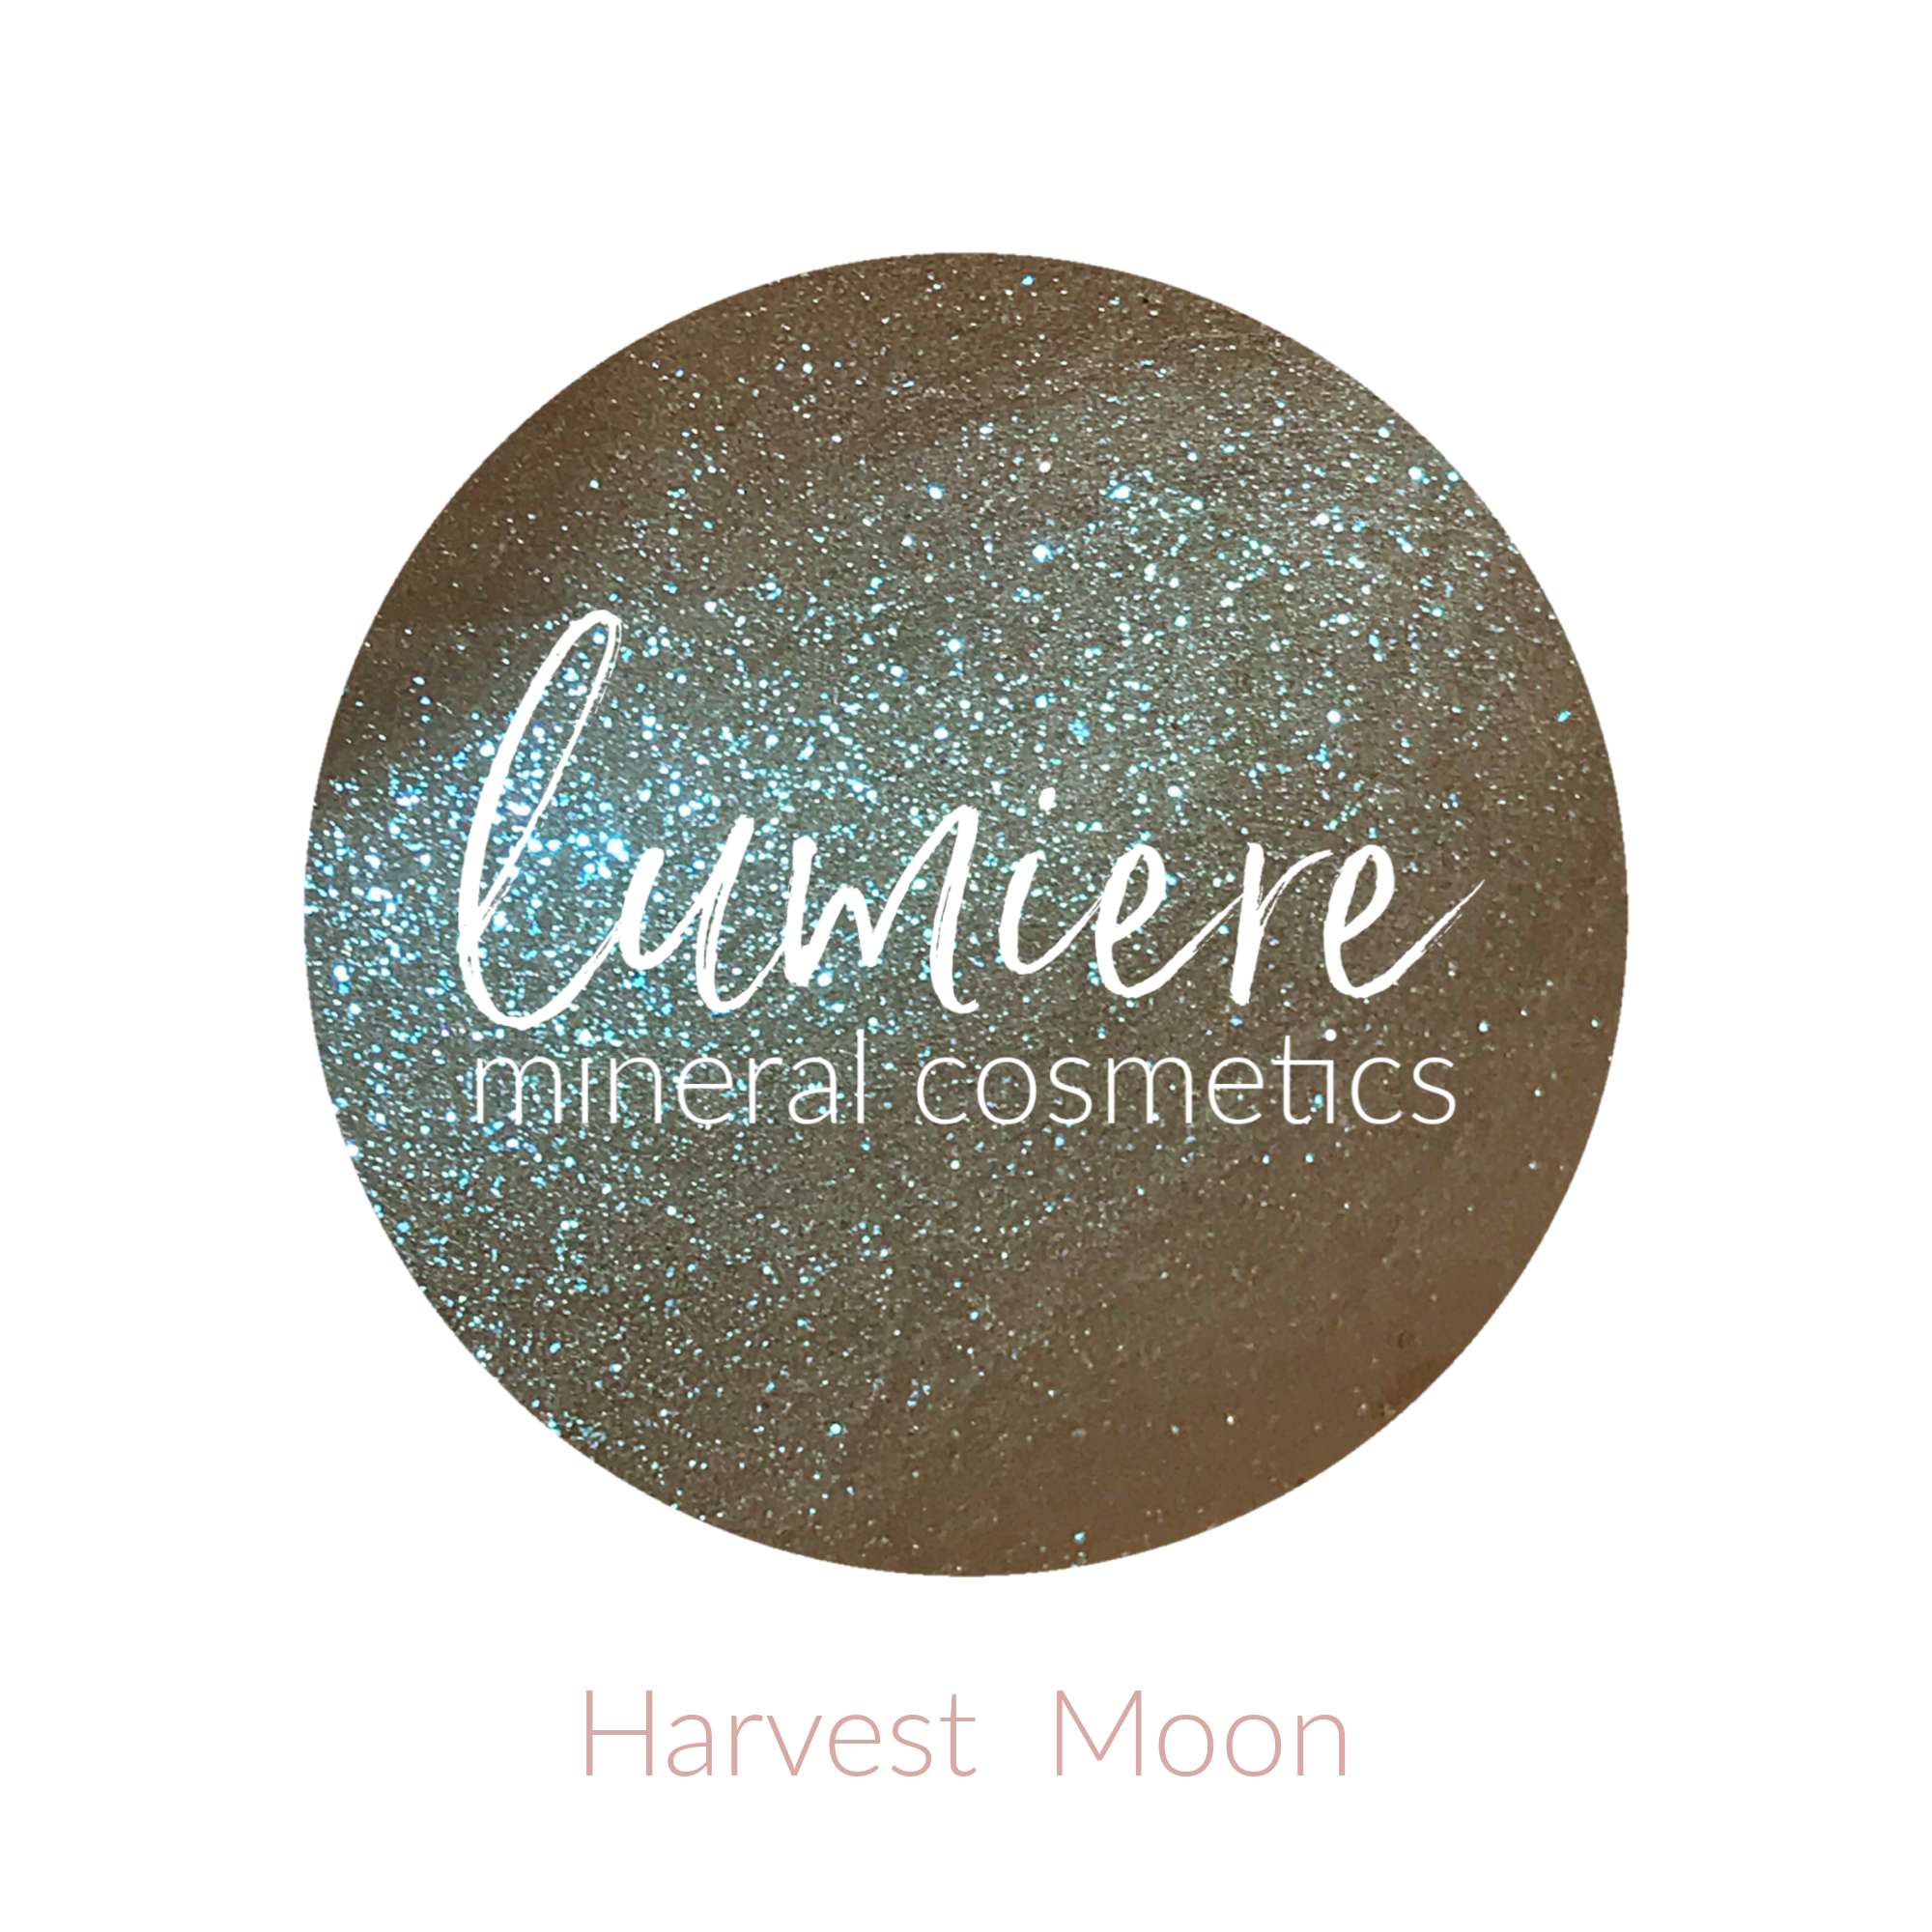 Harvest Moon Eyeshadow